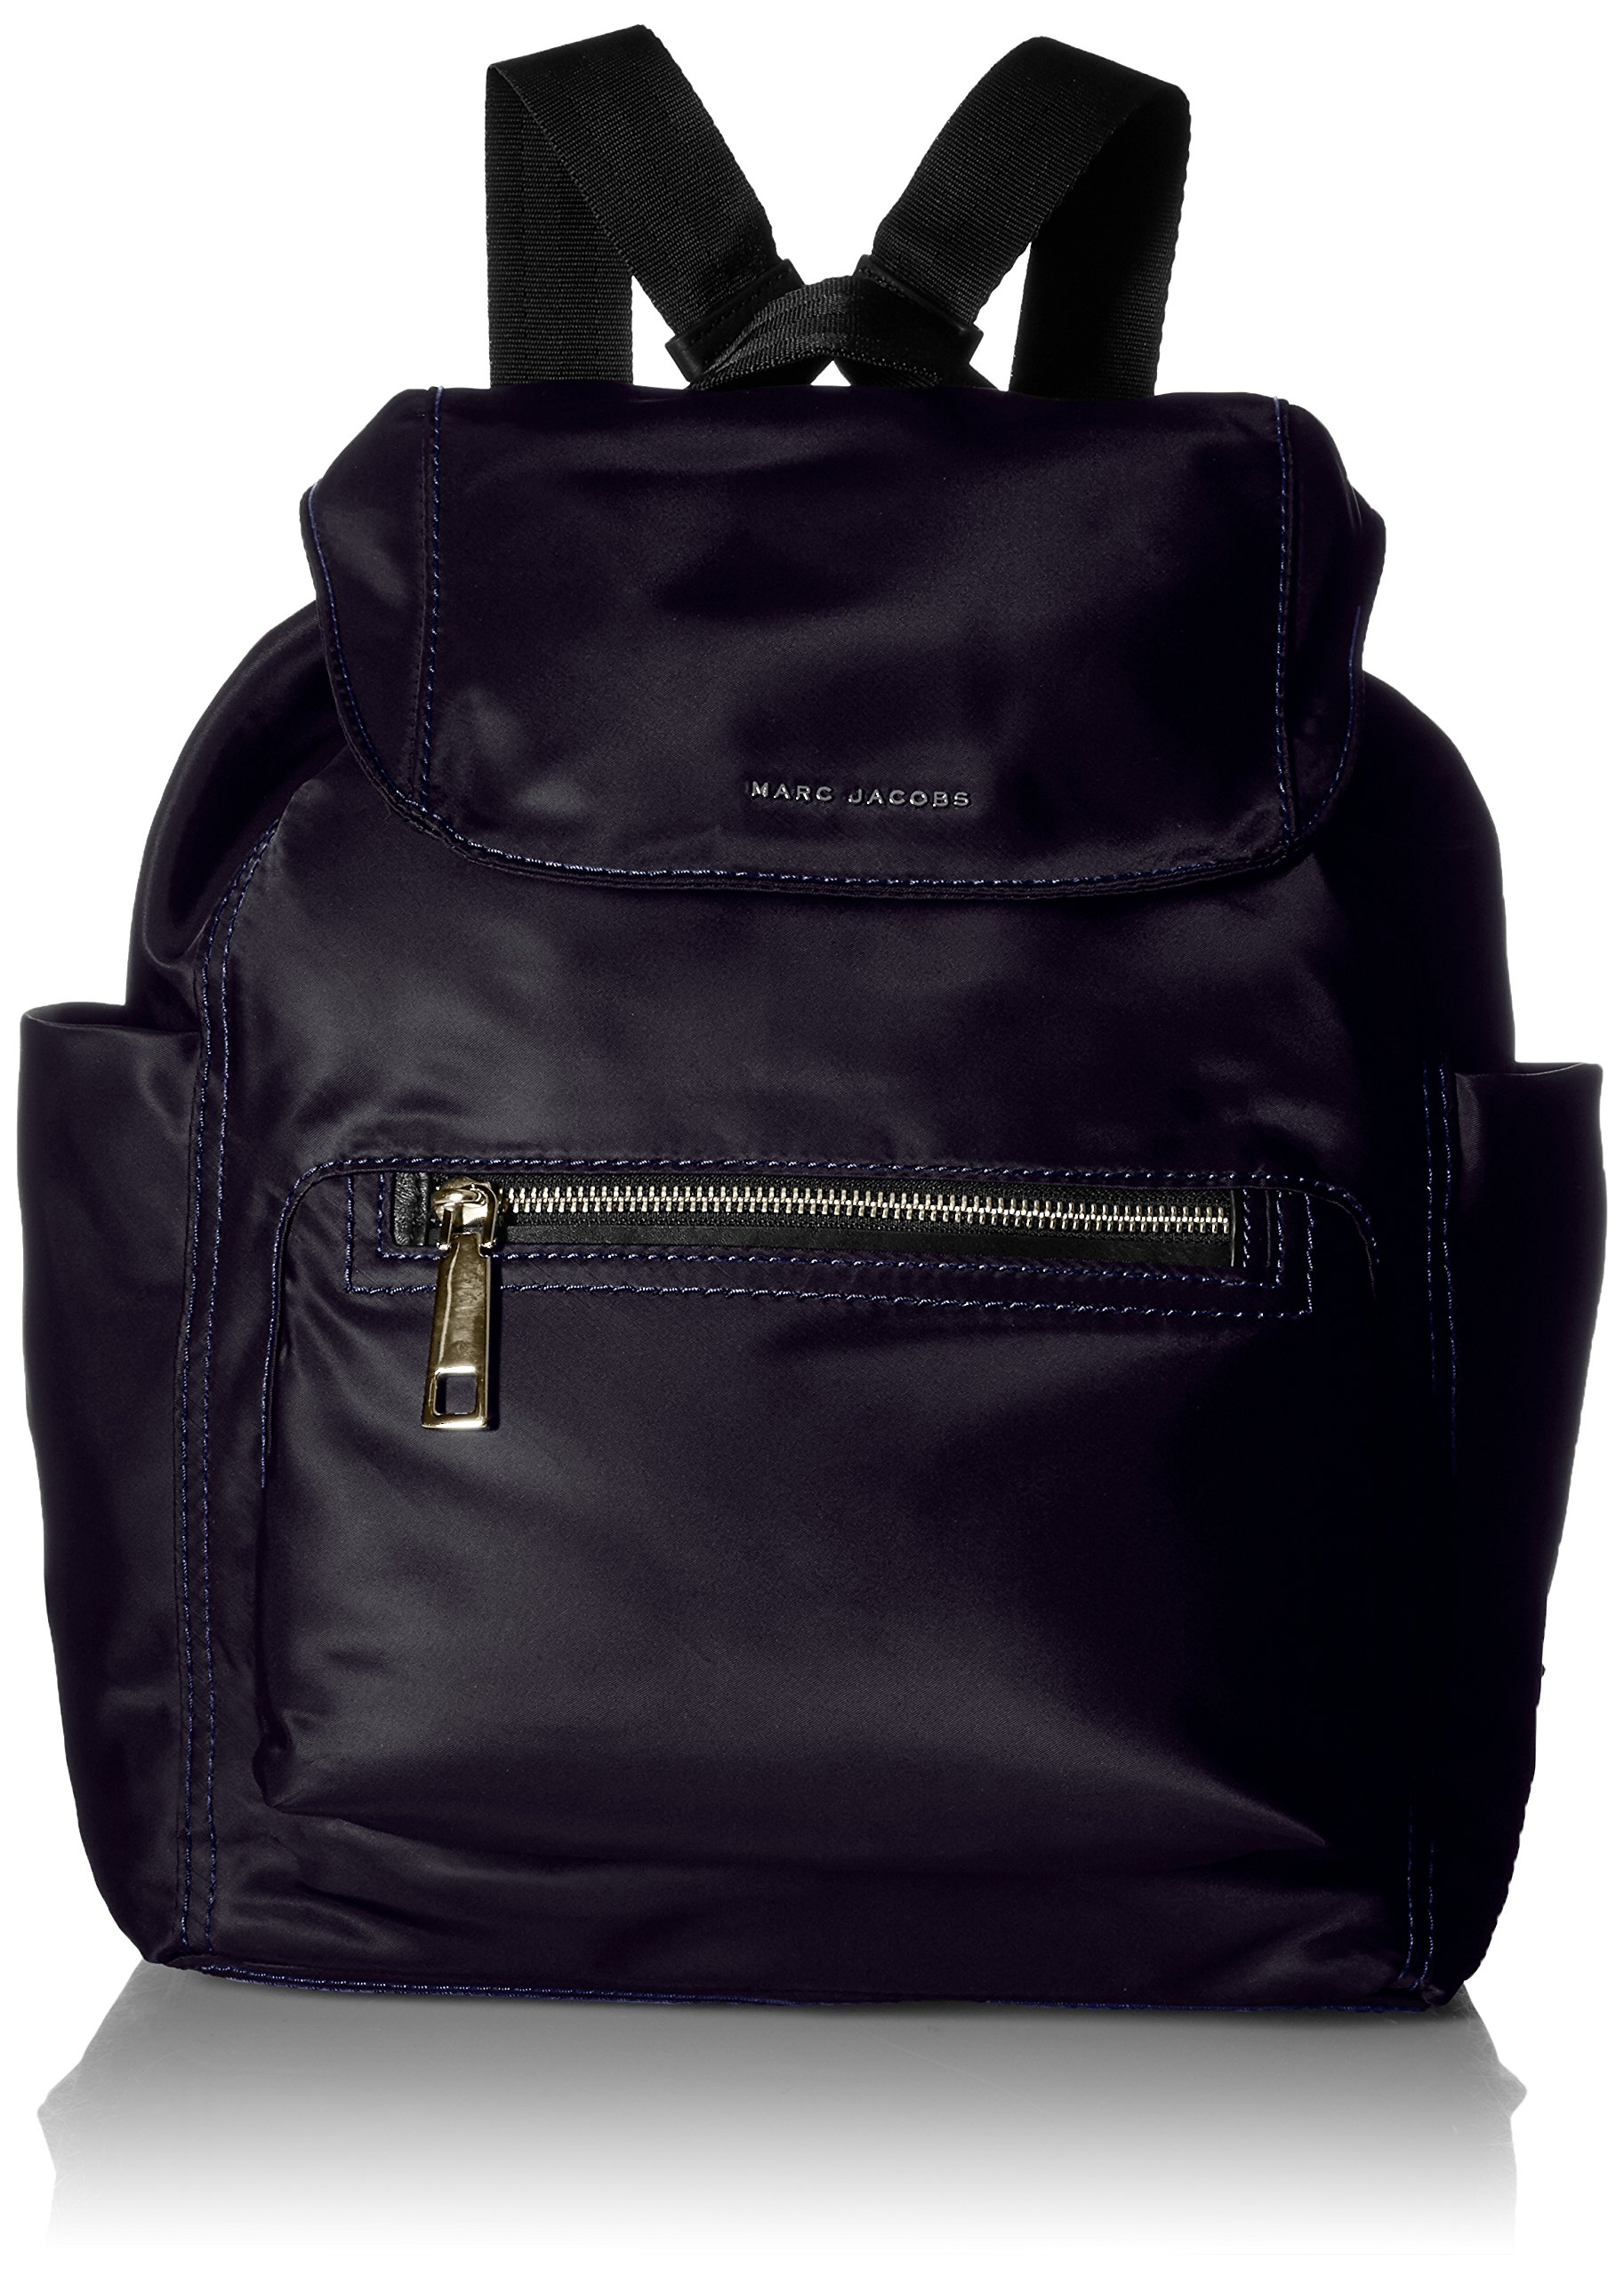 Marc Jacobs Easy Back pack, Amalfi Coast